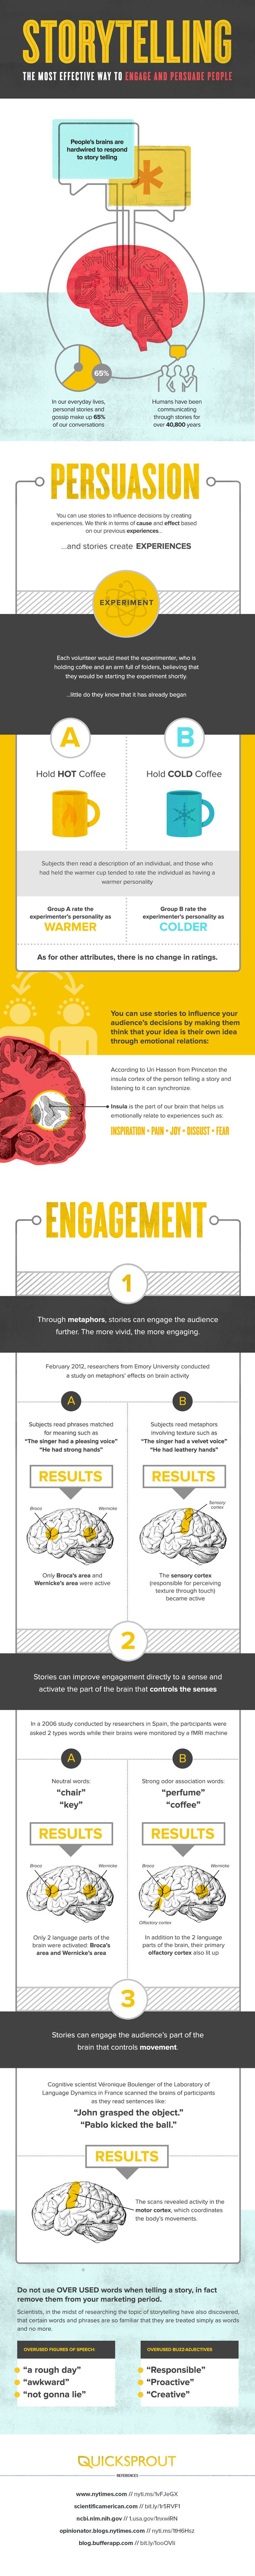 #Storytelling The Most Effective Way to Engage and Persuade People #infographic